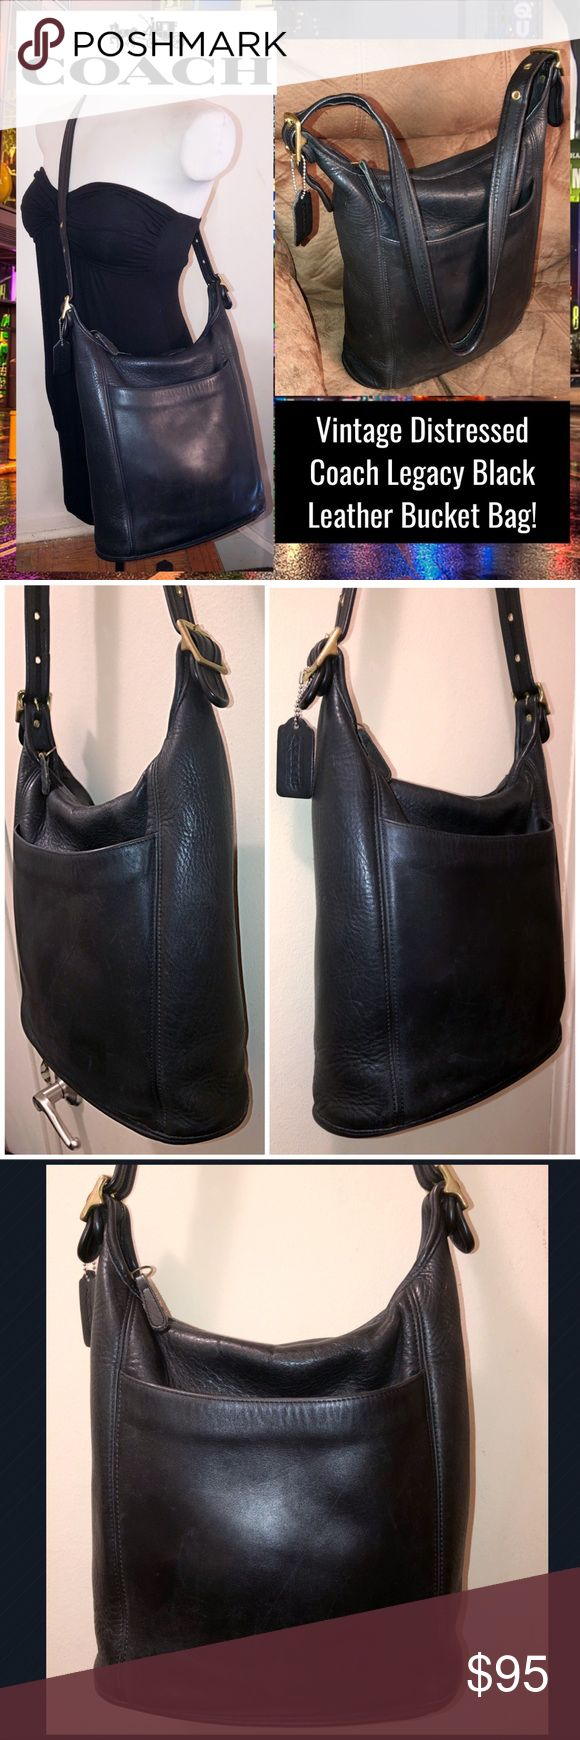 """VTG Distressed Coach Legacy Leather Bucket Bag! Vintage Distressed Coach Legacy Black Leather Bucket Bag! Features:100% authentic, front slip pocket, silver tone hardware, black leather, unlined, one int zip pocket, zip top closure & adjustable leather strap with Coach hang tag, creed & serial no. C9C-9060 on inside. Measures 14"""" high side, 11 1/2"""" high middle x 11"""" across x 4 1/2"""" wide with up to 18"""" clearance. Some minor exterior marks & natural variations in leather. VG condition. Offers…"""